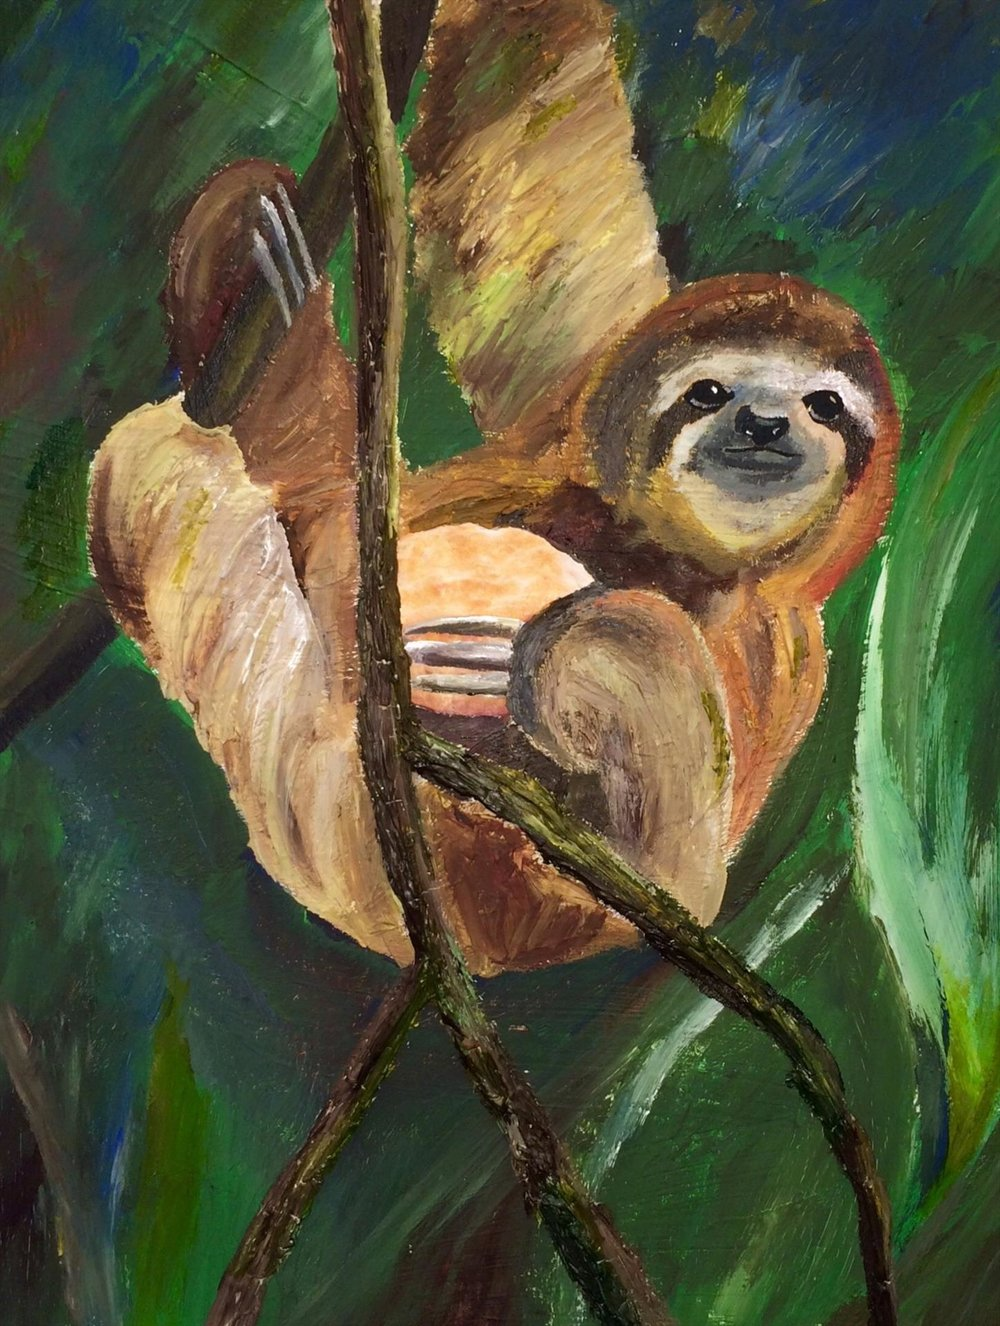 $175 - sloths don't eat biscuits, silly by rachel hankins // acrylic & paper 16x20